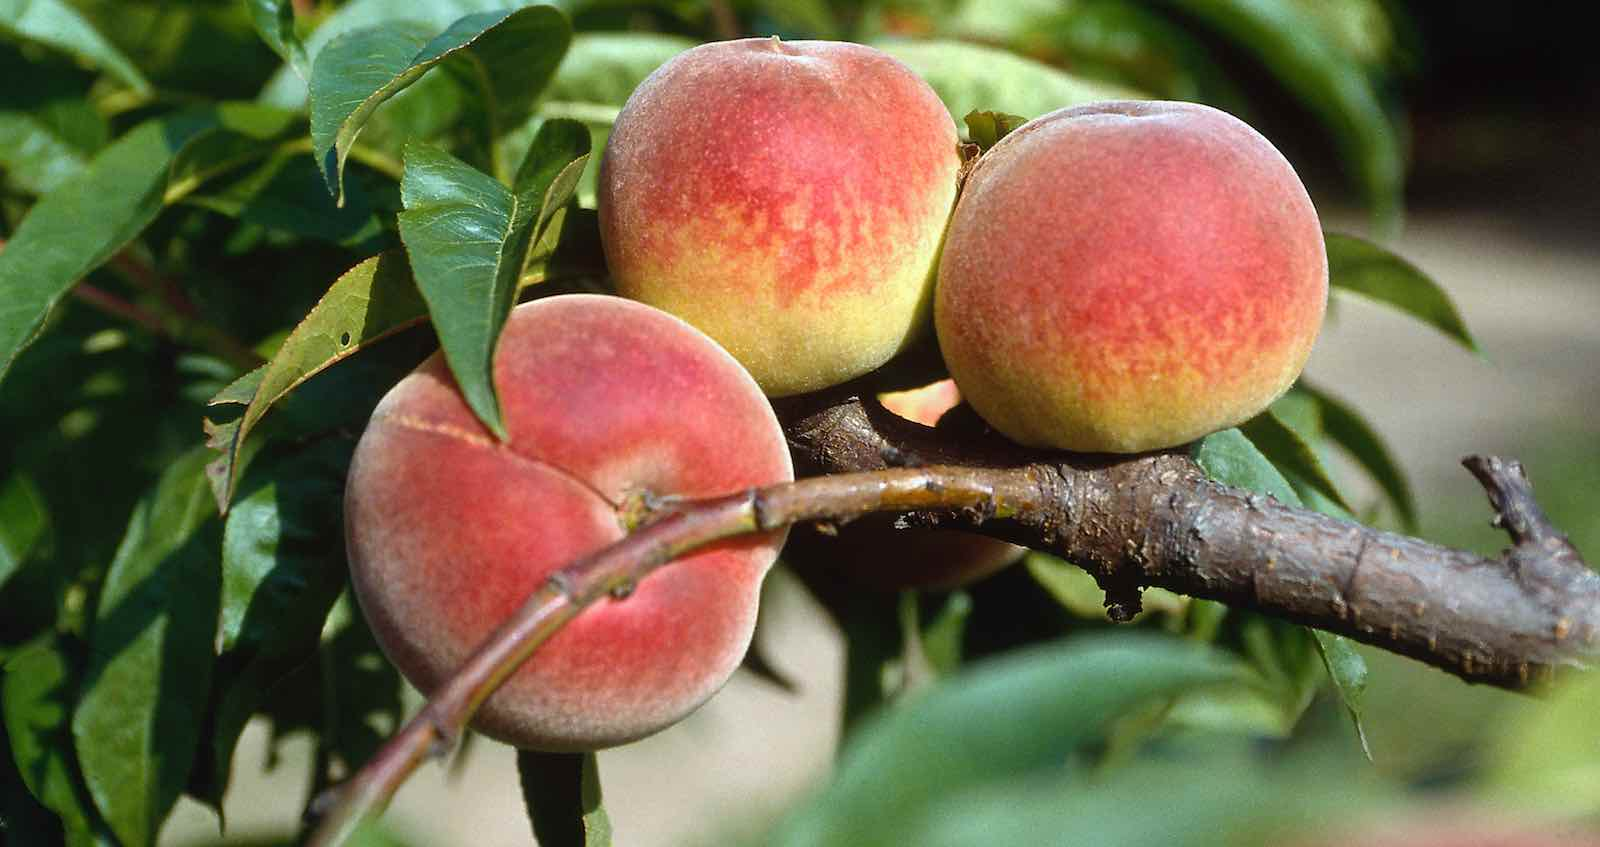 Ripe for the picking (Photo: Getty Images)